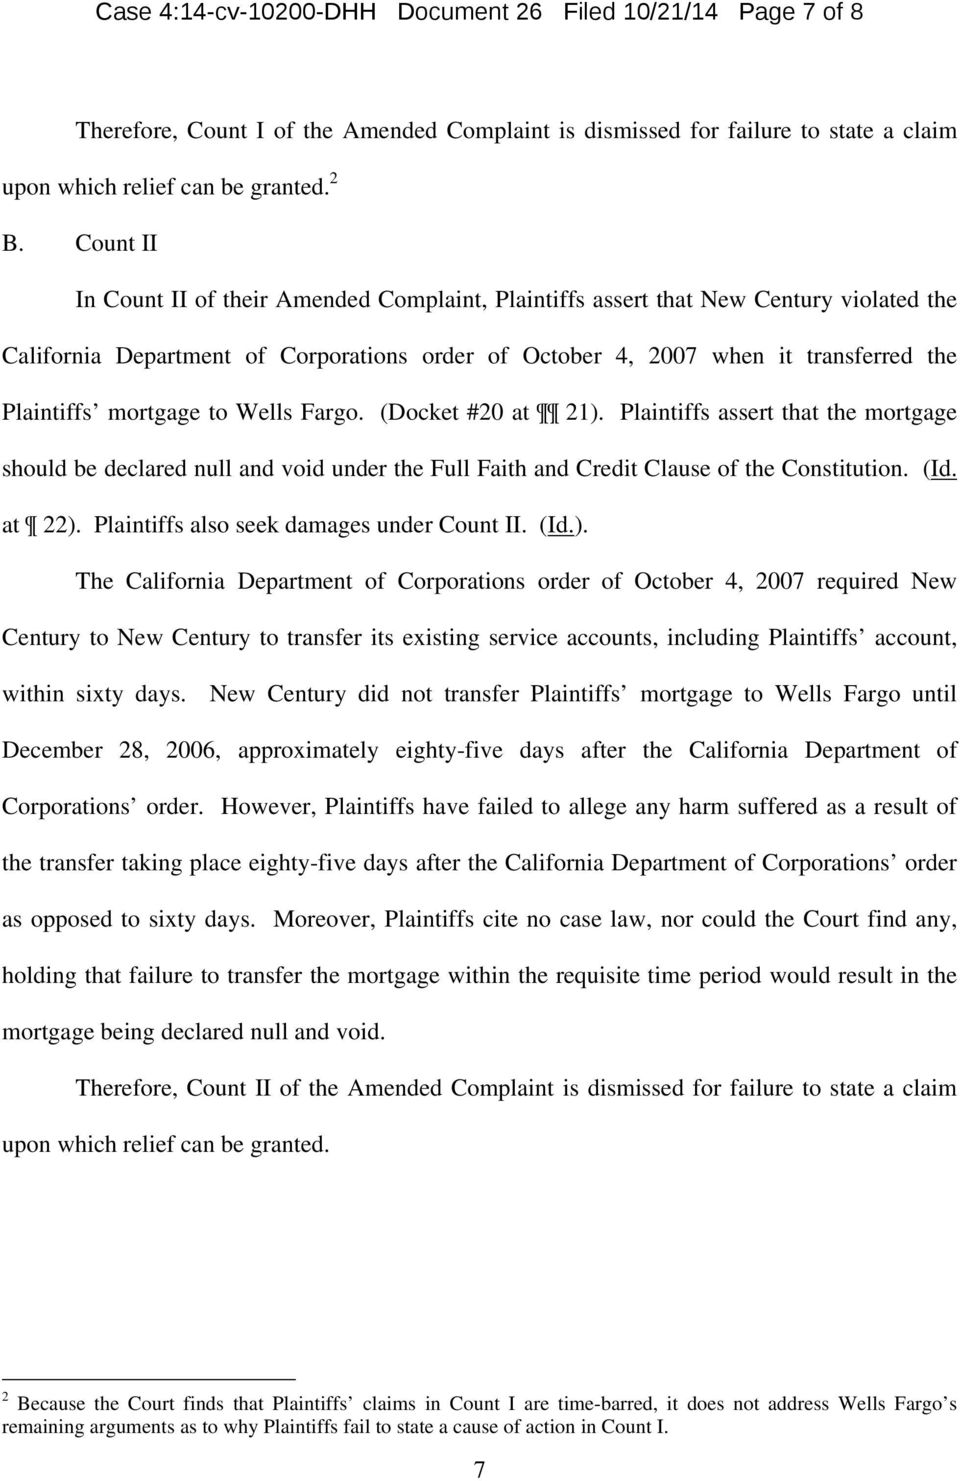 mortgage to Wells Fargo. (Docket #20 at 21). Plaintiffs assert that the mortgage should be declared null and void under the Full Faith and Credit Clause of the Constitution. (Id. at 22).